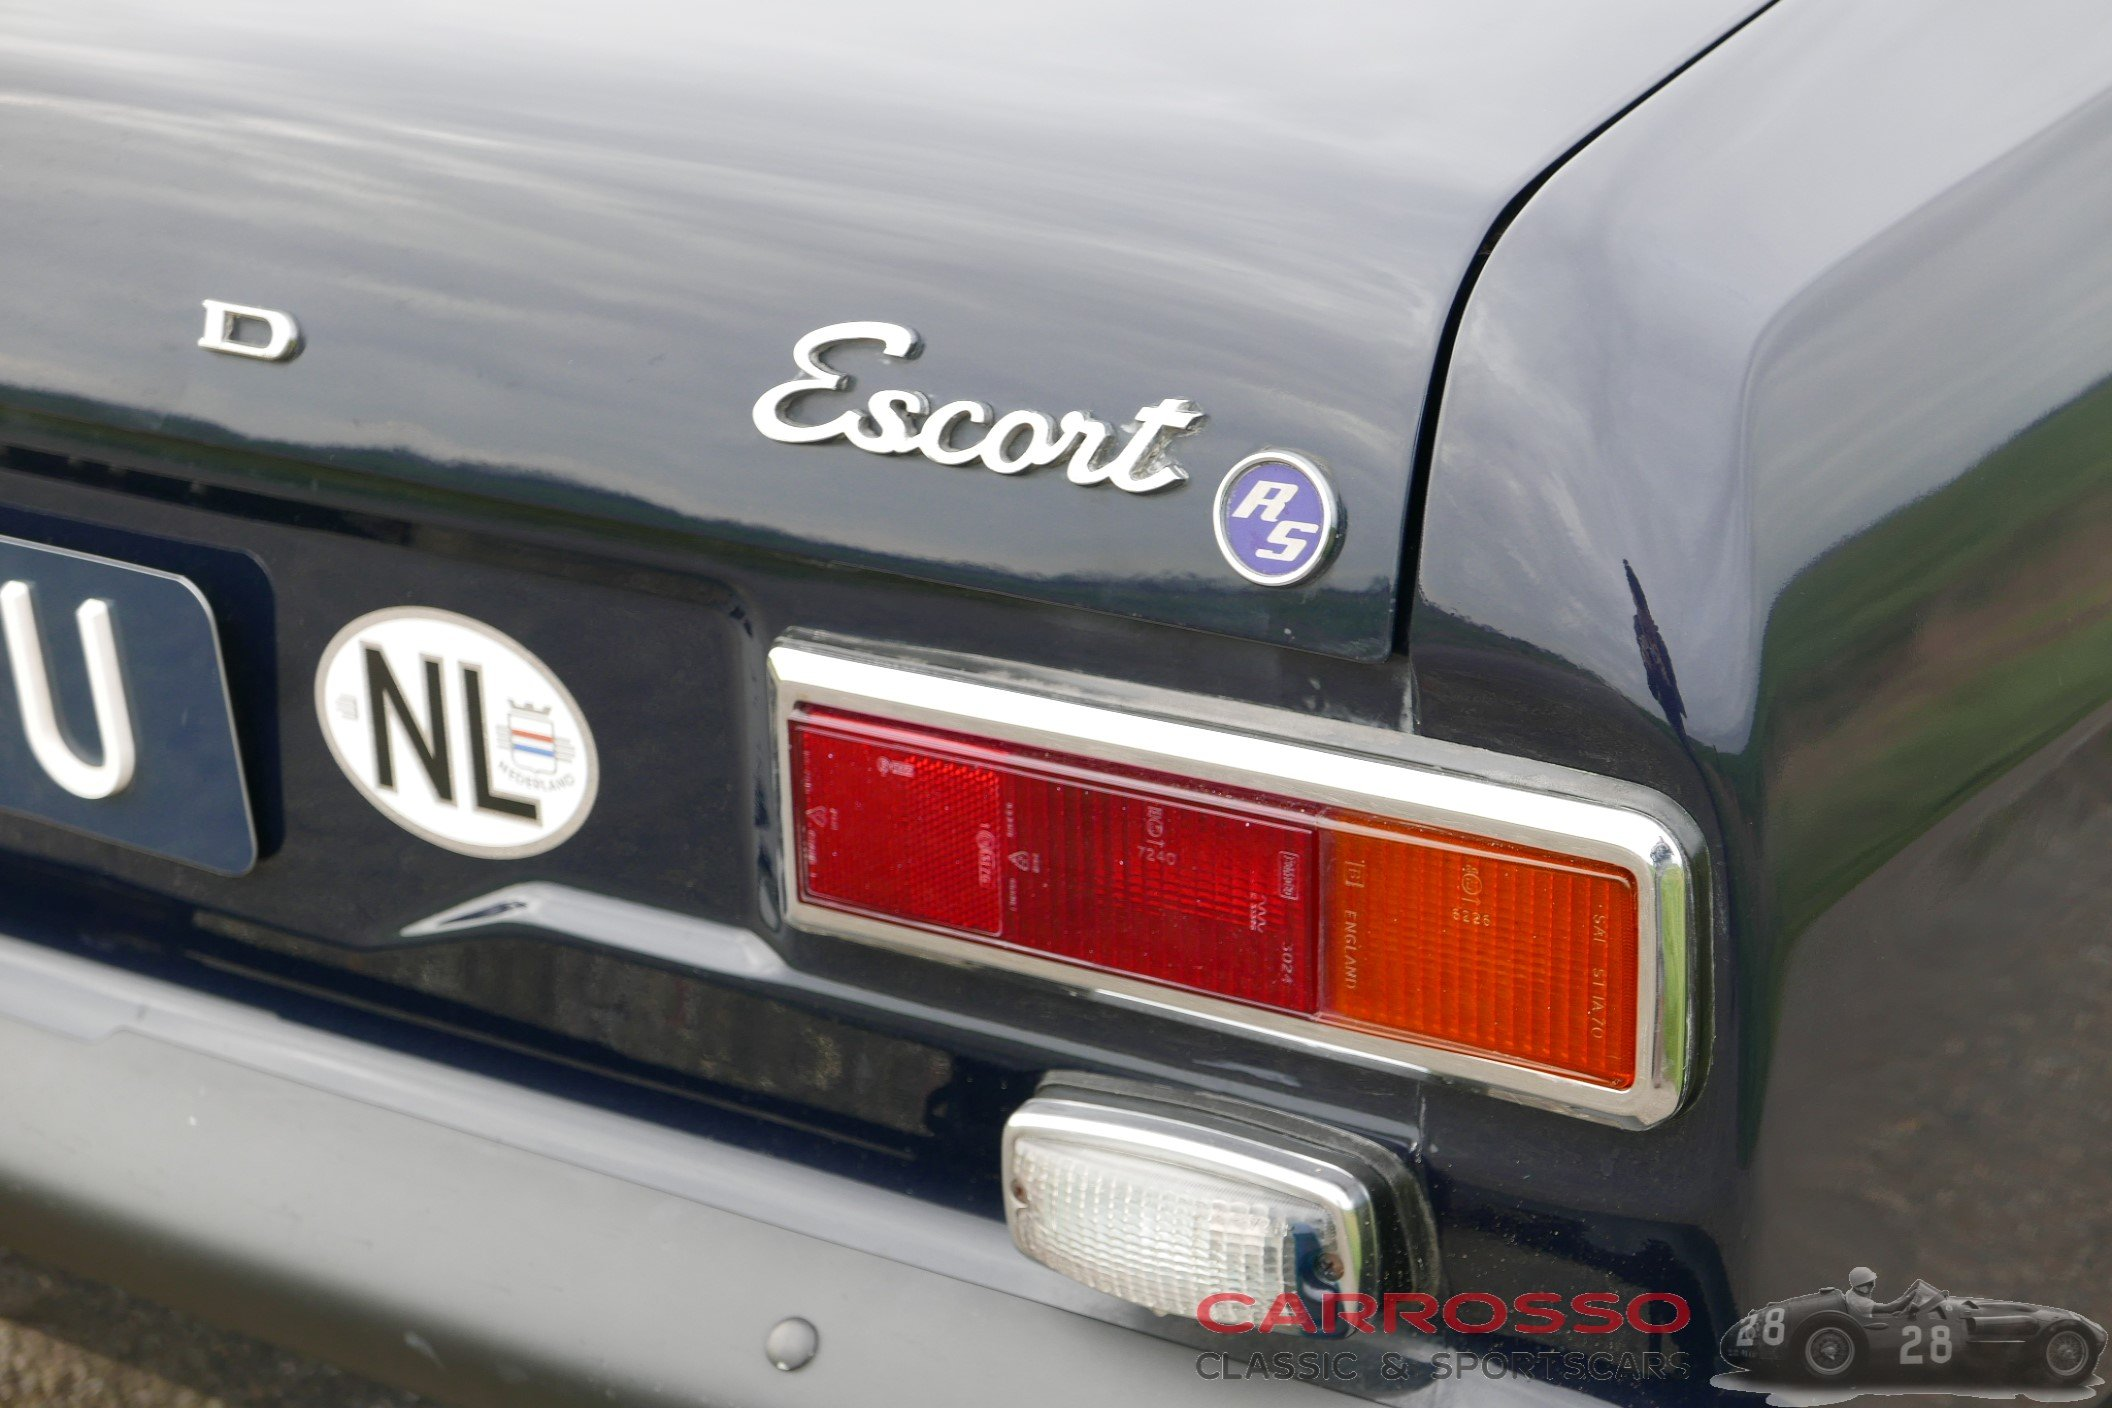 31Ford Escort Rally (49)